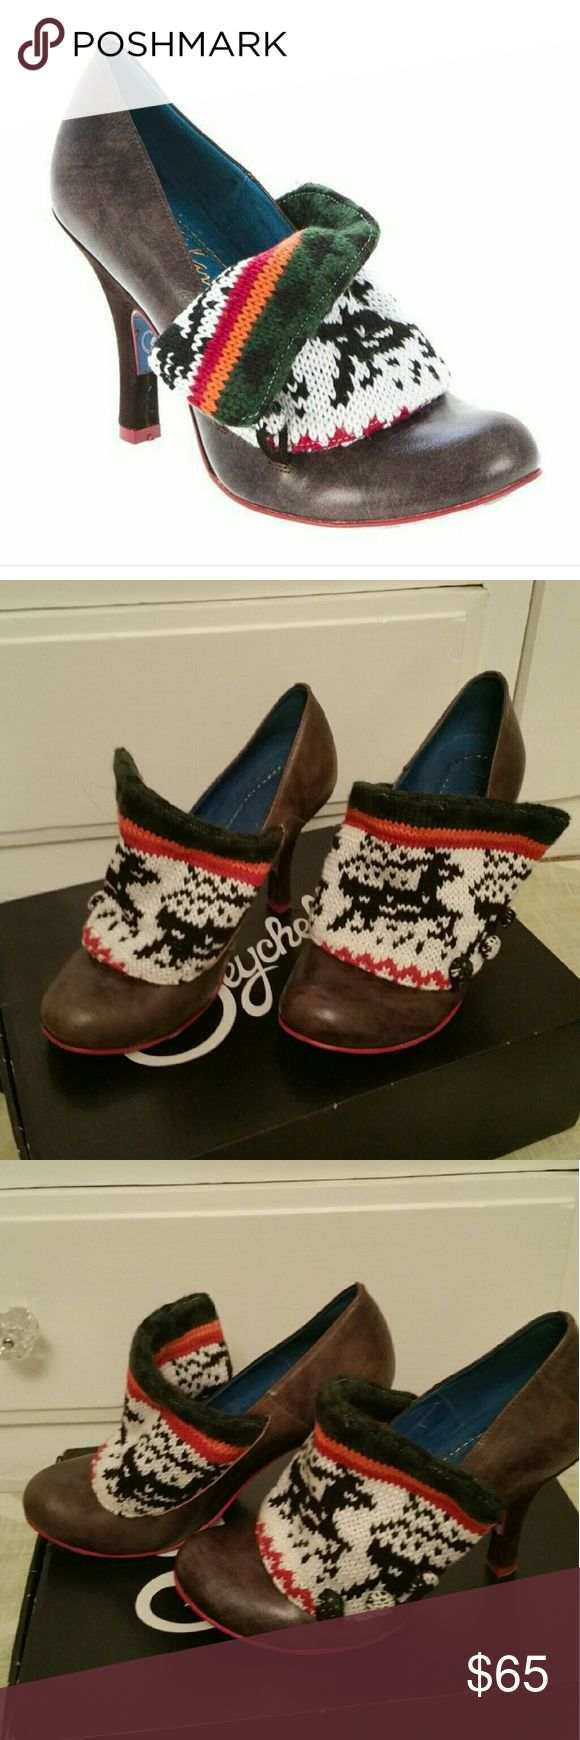 Irregular Choice flick flack sweater shoe Really hard to find IC flick flack in a fair isle sweater style. This brand is sold at high end shoe stores and sometimes at anthropologie. Size EU 38 about a size 7,7 1/2 in womens. Worn maybe twice in their lifetime almost brand new. It took forever to find these but I just never wear them now and I'm cleaning out the closet. Open to all offers and trades. irregular choice Shoes